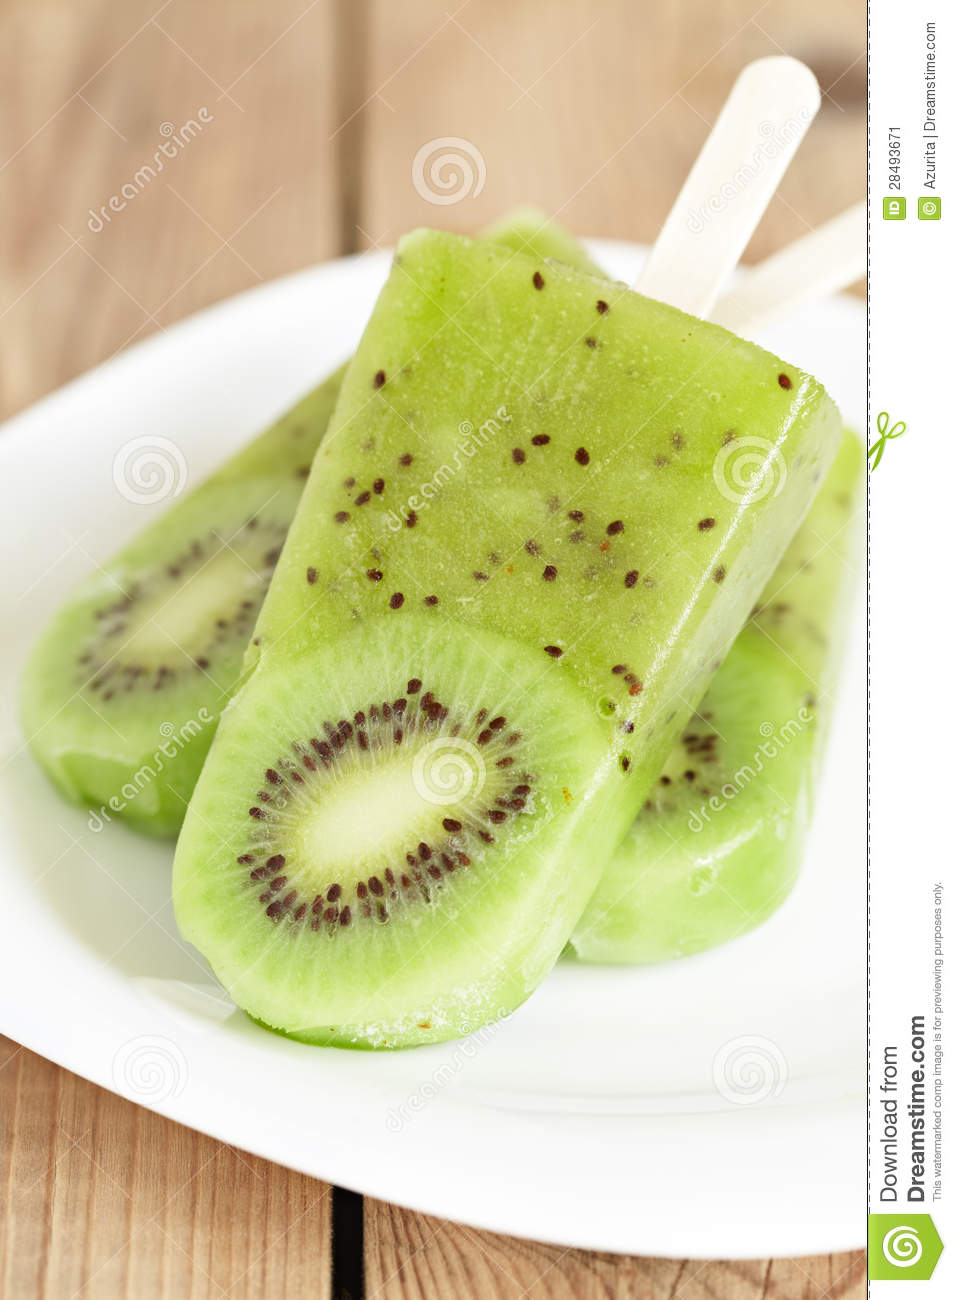 Kiwi Ice Cream Popsicle Stock Image - Image: 28493671